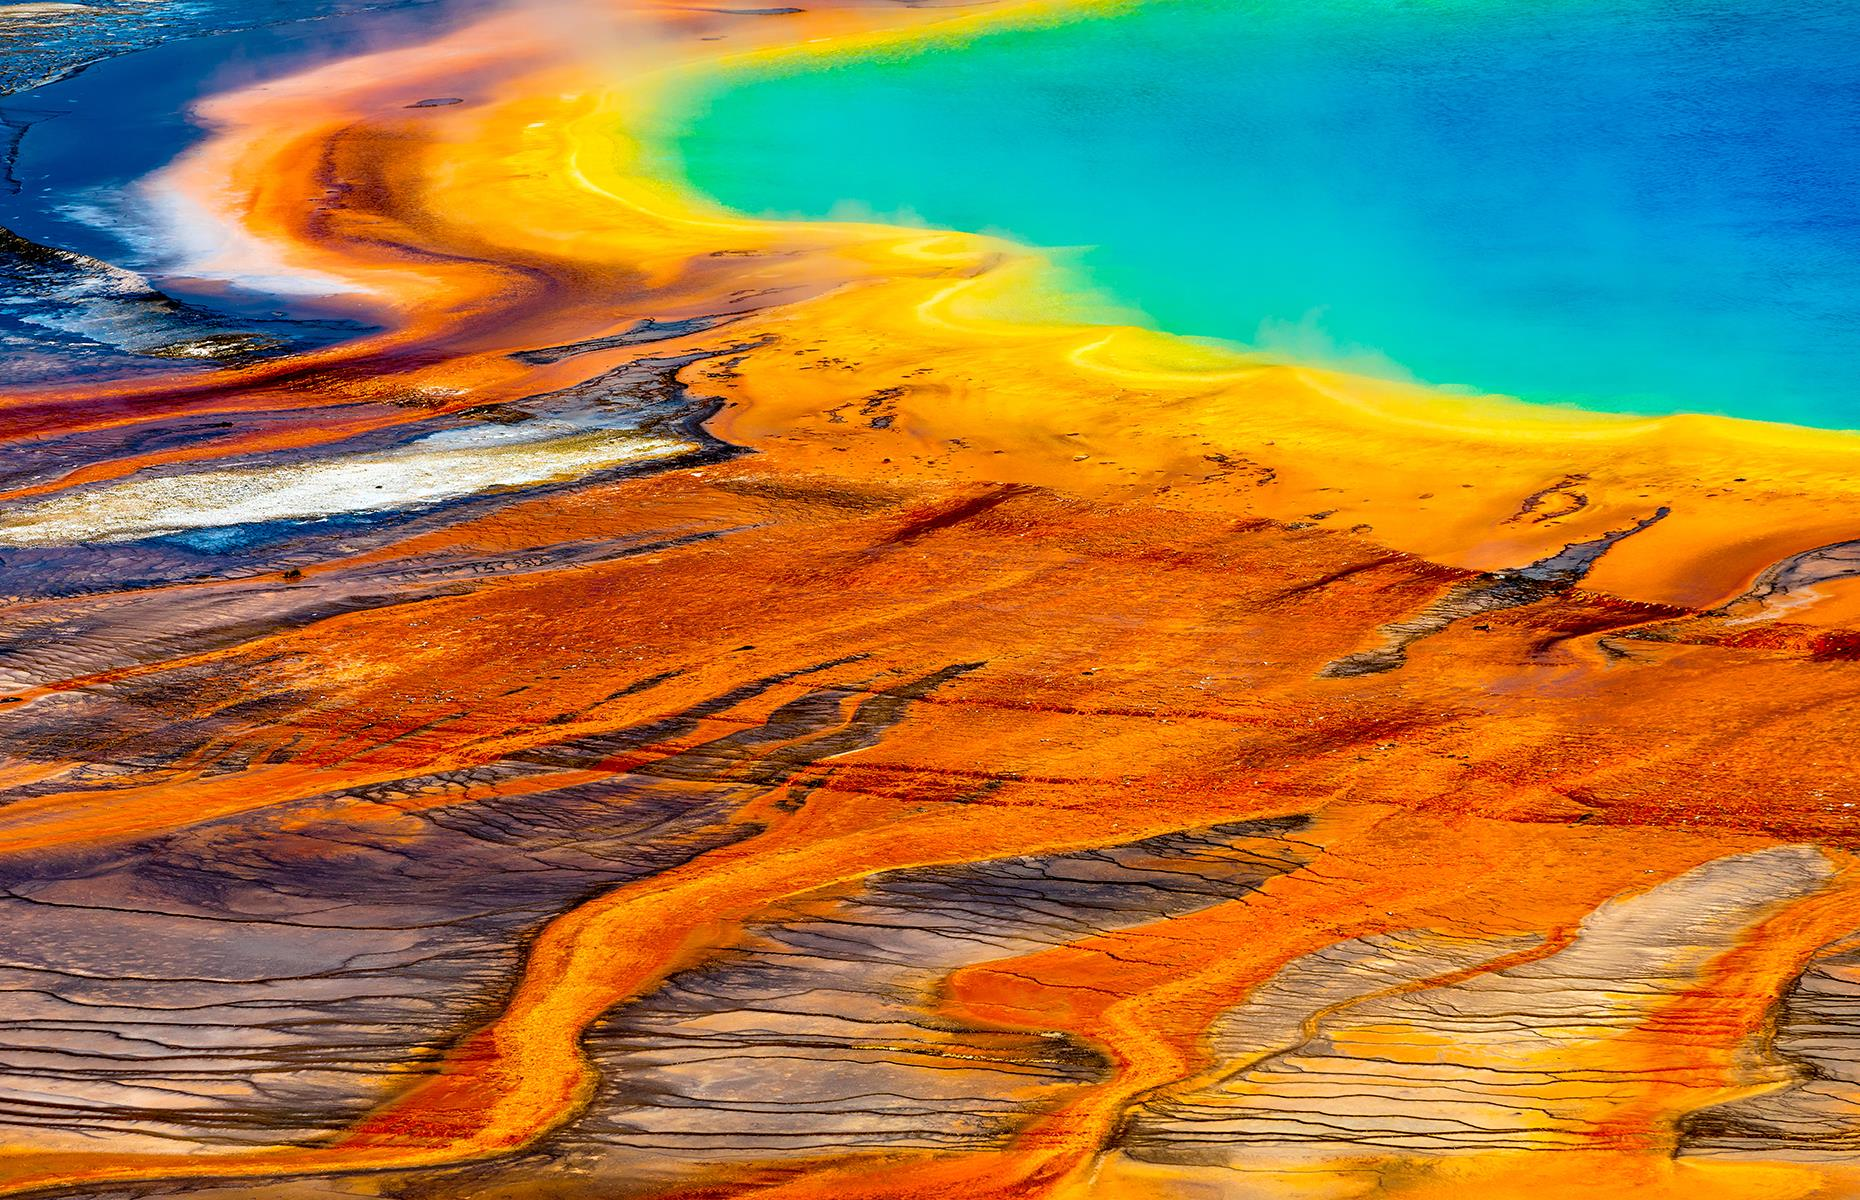 Slide 40 of 43: Yellowstone's most famous hot spring, the Grand Prismatic's vivid blue centeris surrounded by bands of rusty orange, yellow and green, making it look otherworldly. The largest hot spring in the United States and the third largest in the world, Grand Prismatic's water reaches a temperature of around160°F (70°C). Multi-layered sheets of microorganisms called microbial mats give the bands their distinctive colors, that tend to change slightly with the seasons.